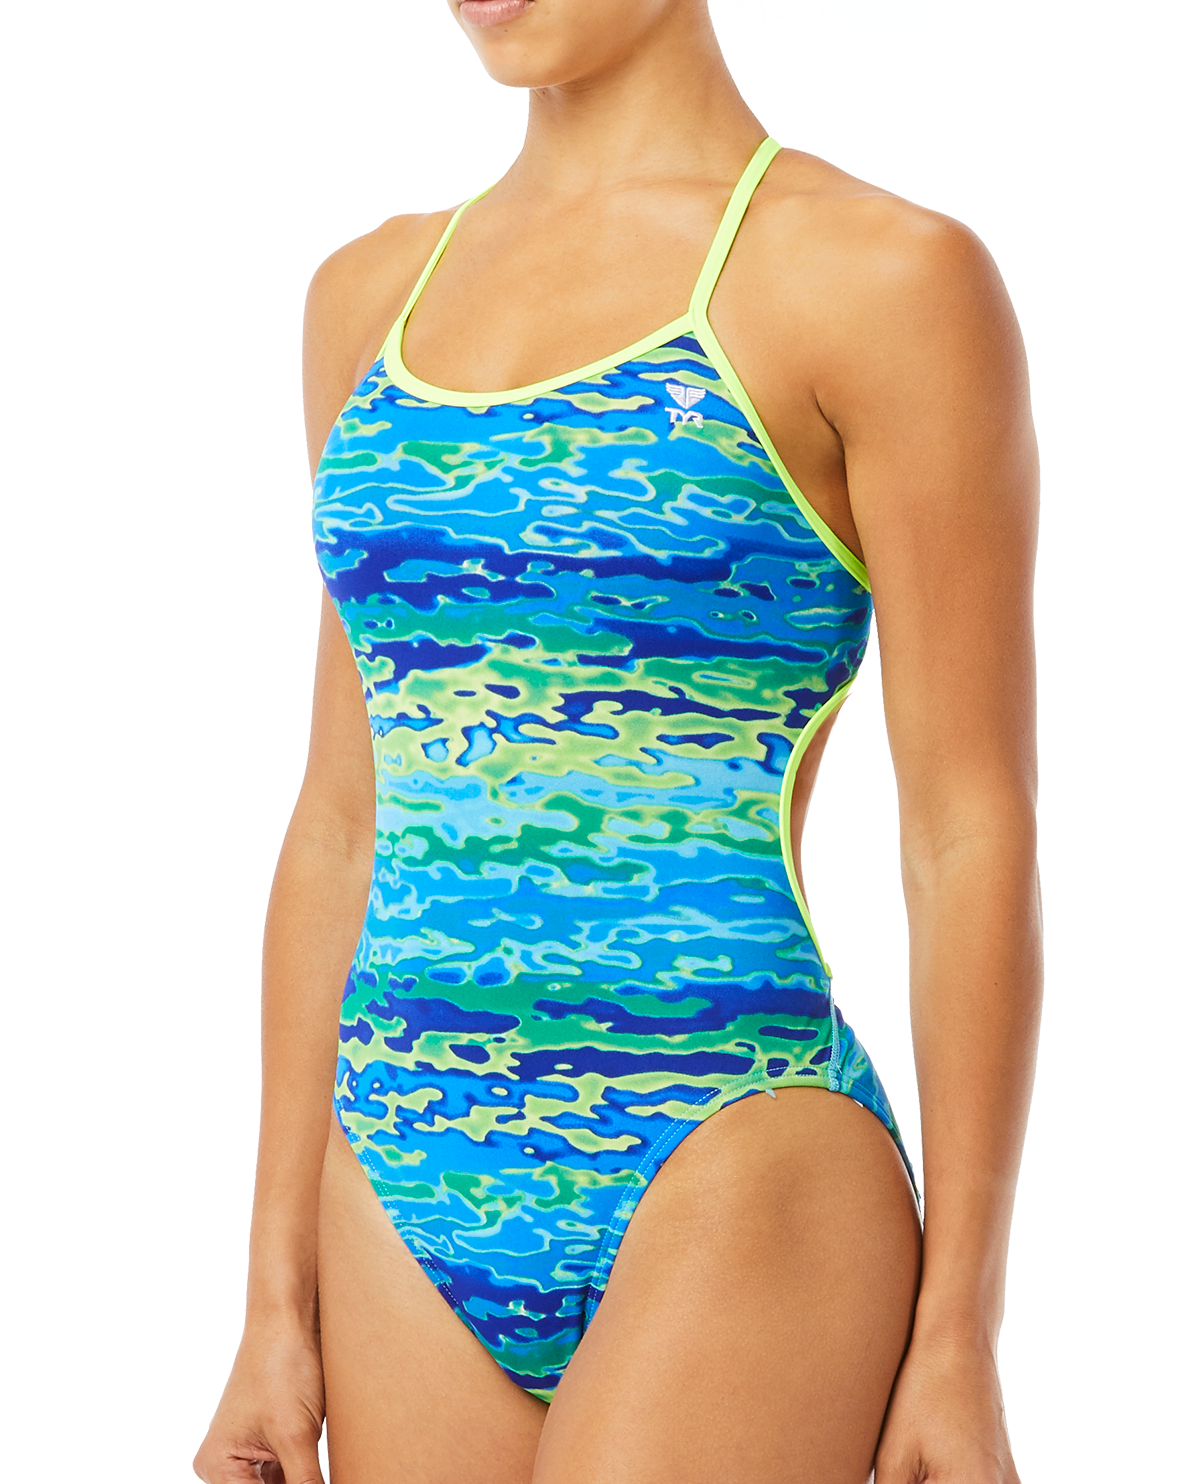 102bdf8994c12 TYR Women's Serenity Trinityfit Swimsuit - Blue Green ...